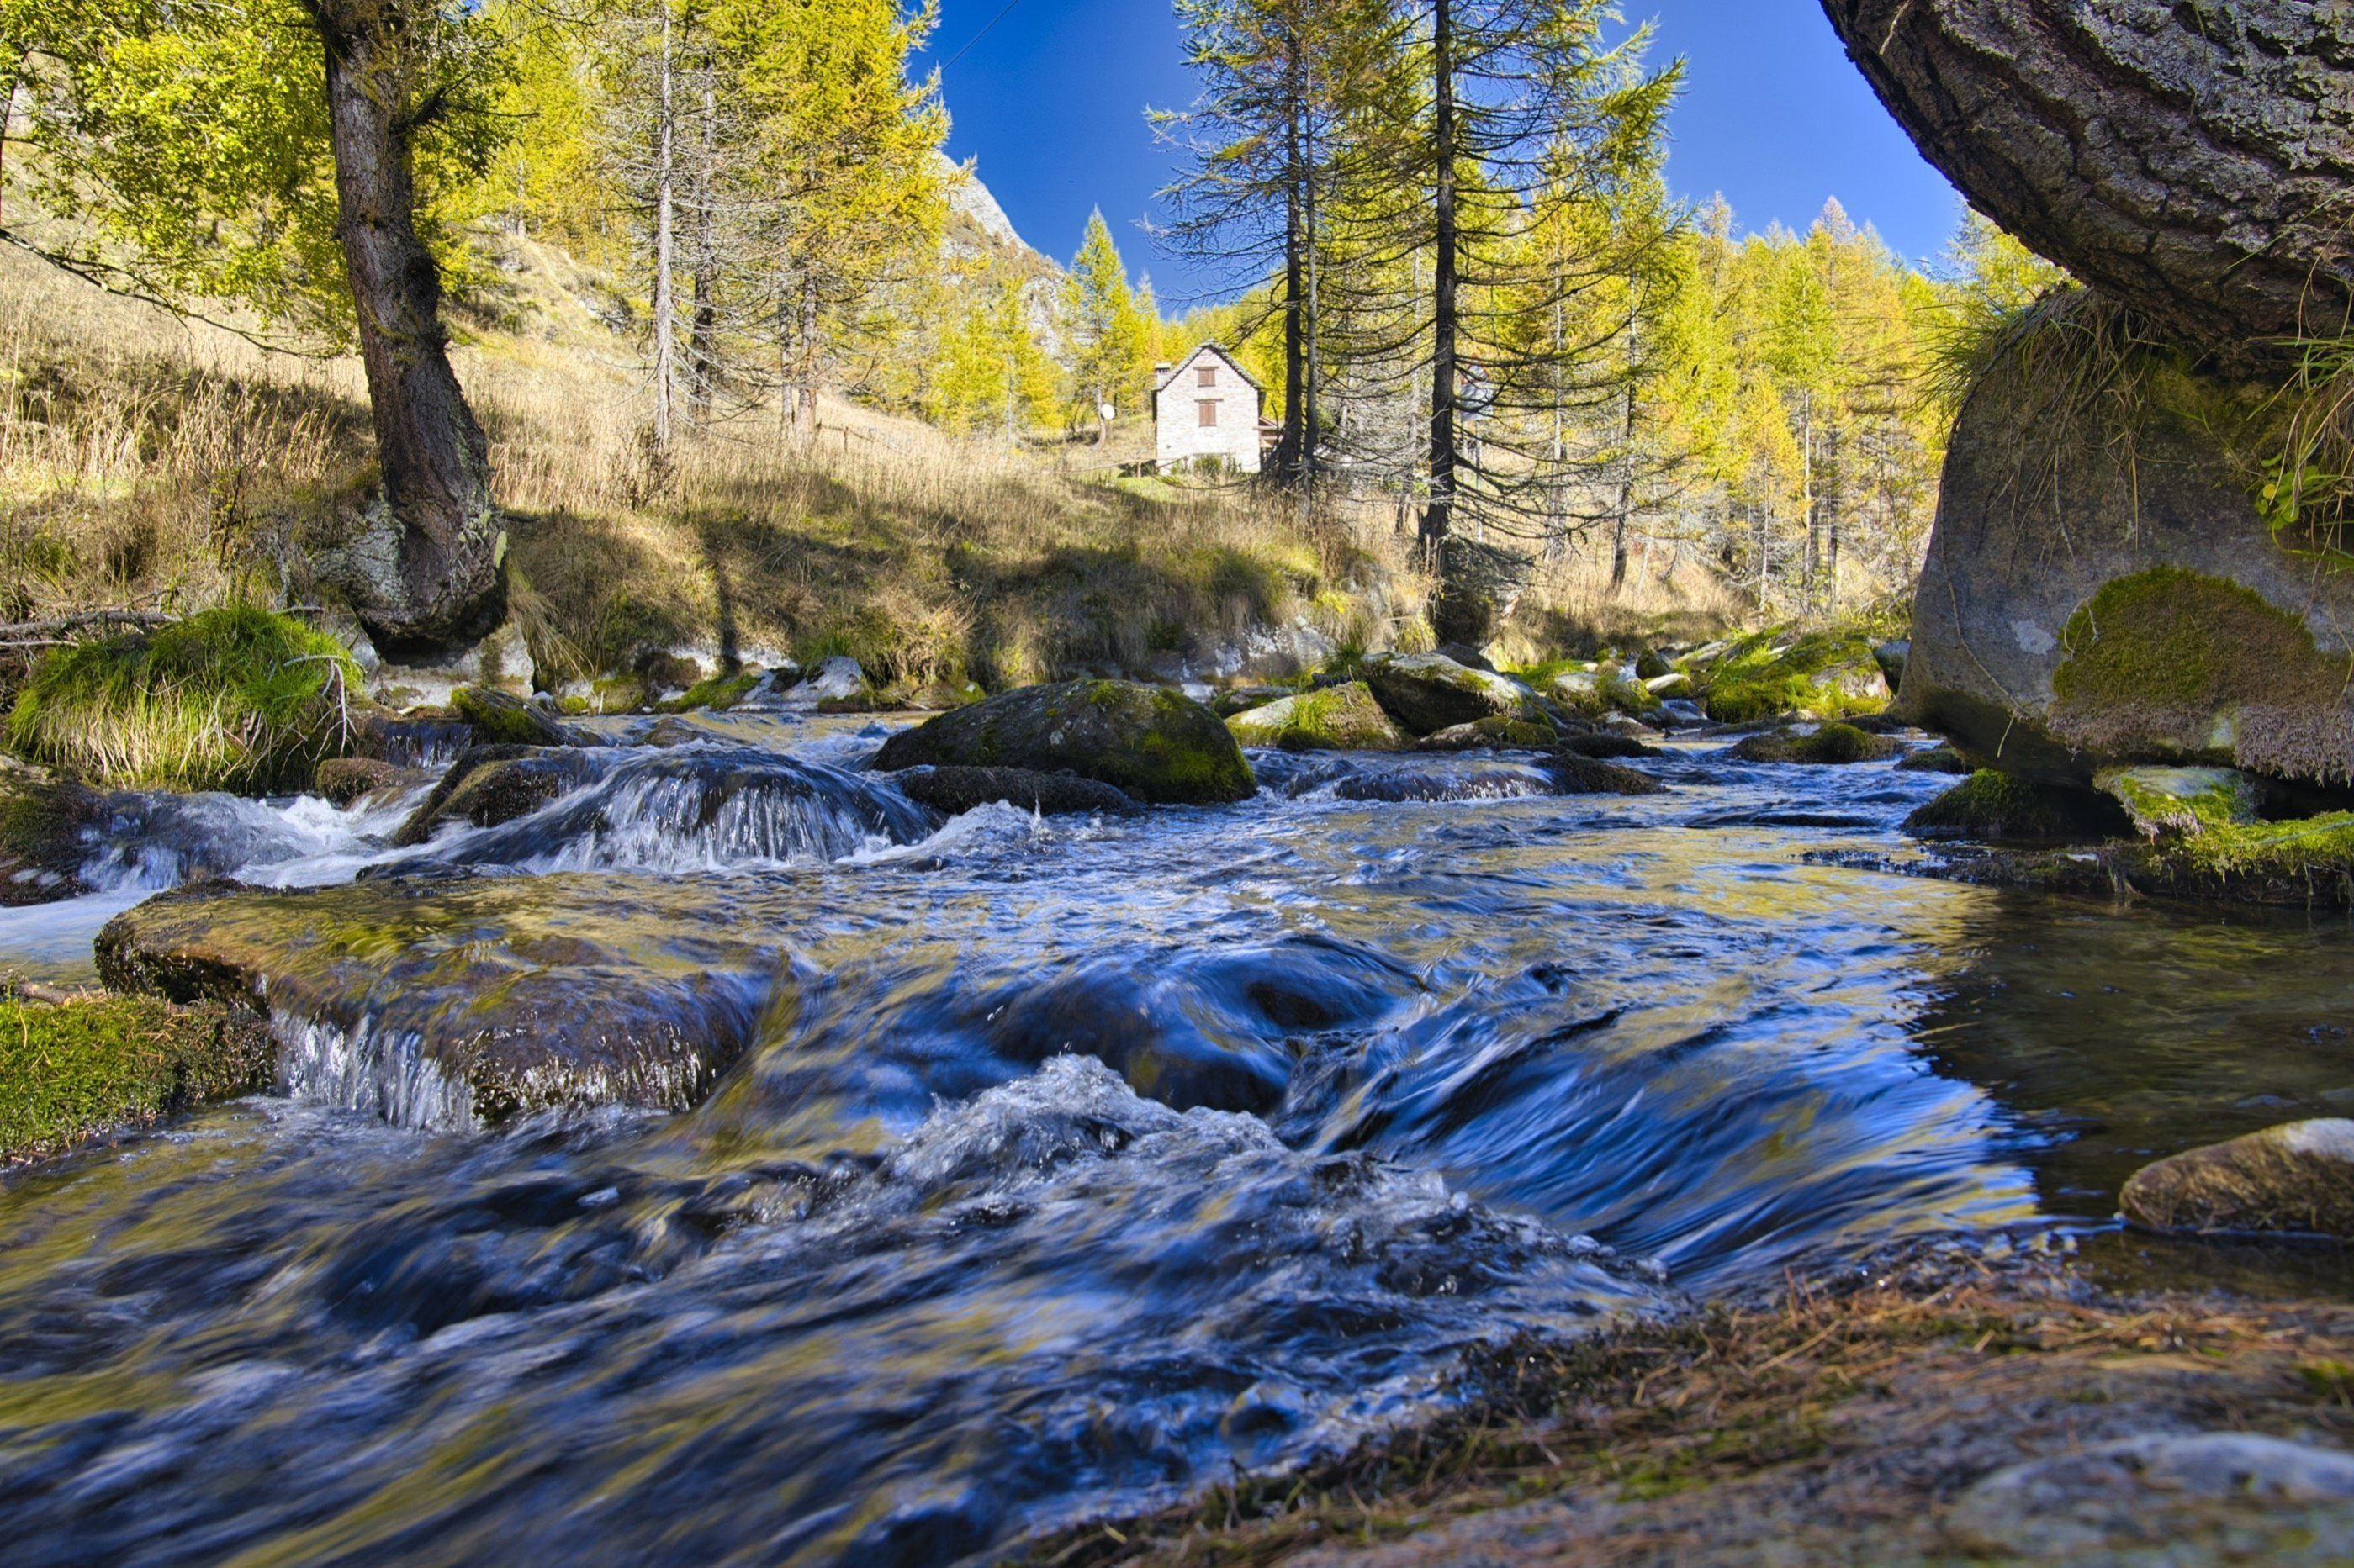 Torrente e foliage autunnale all'Alpe Crampiolo, immersa nel Parco Naturale dell'Alpe Devero